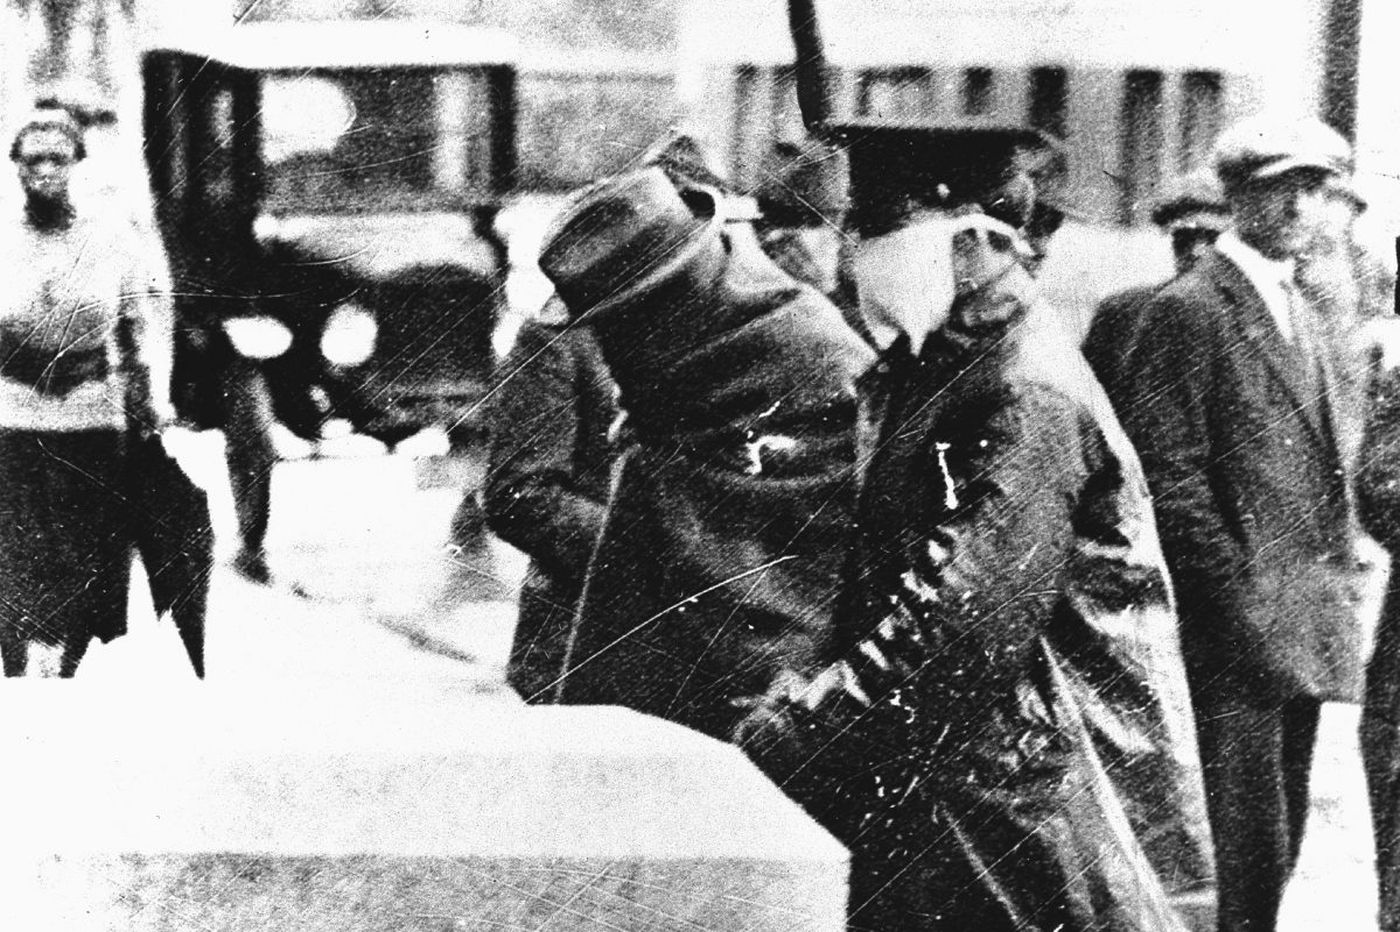 More than 12,000 Philadelphians died in the flu pandemic of 1918. My aunt was one of them